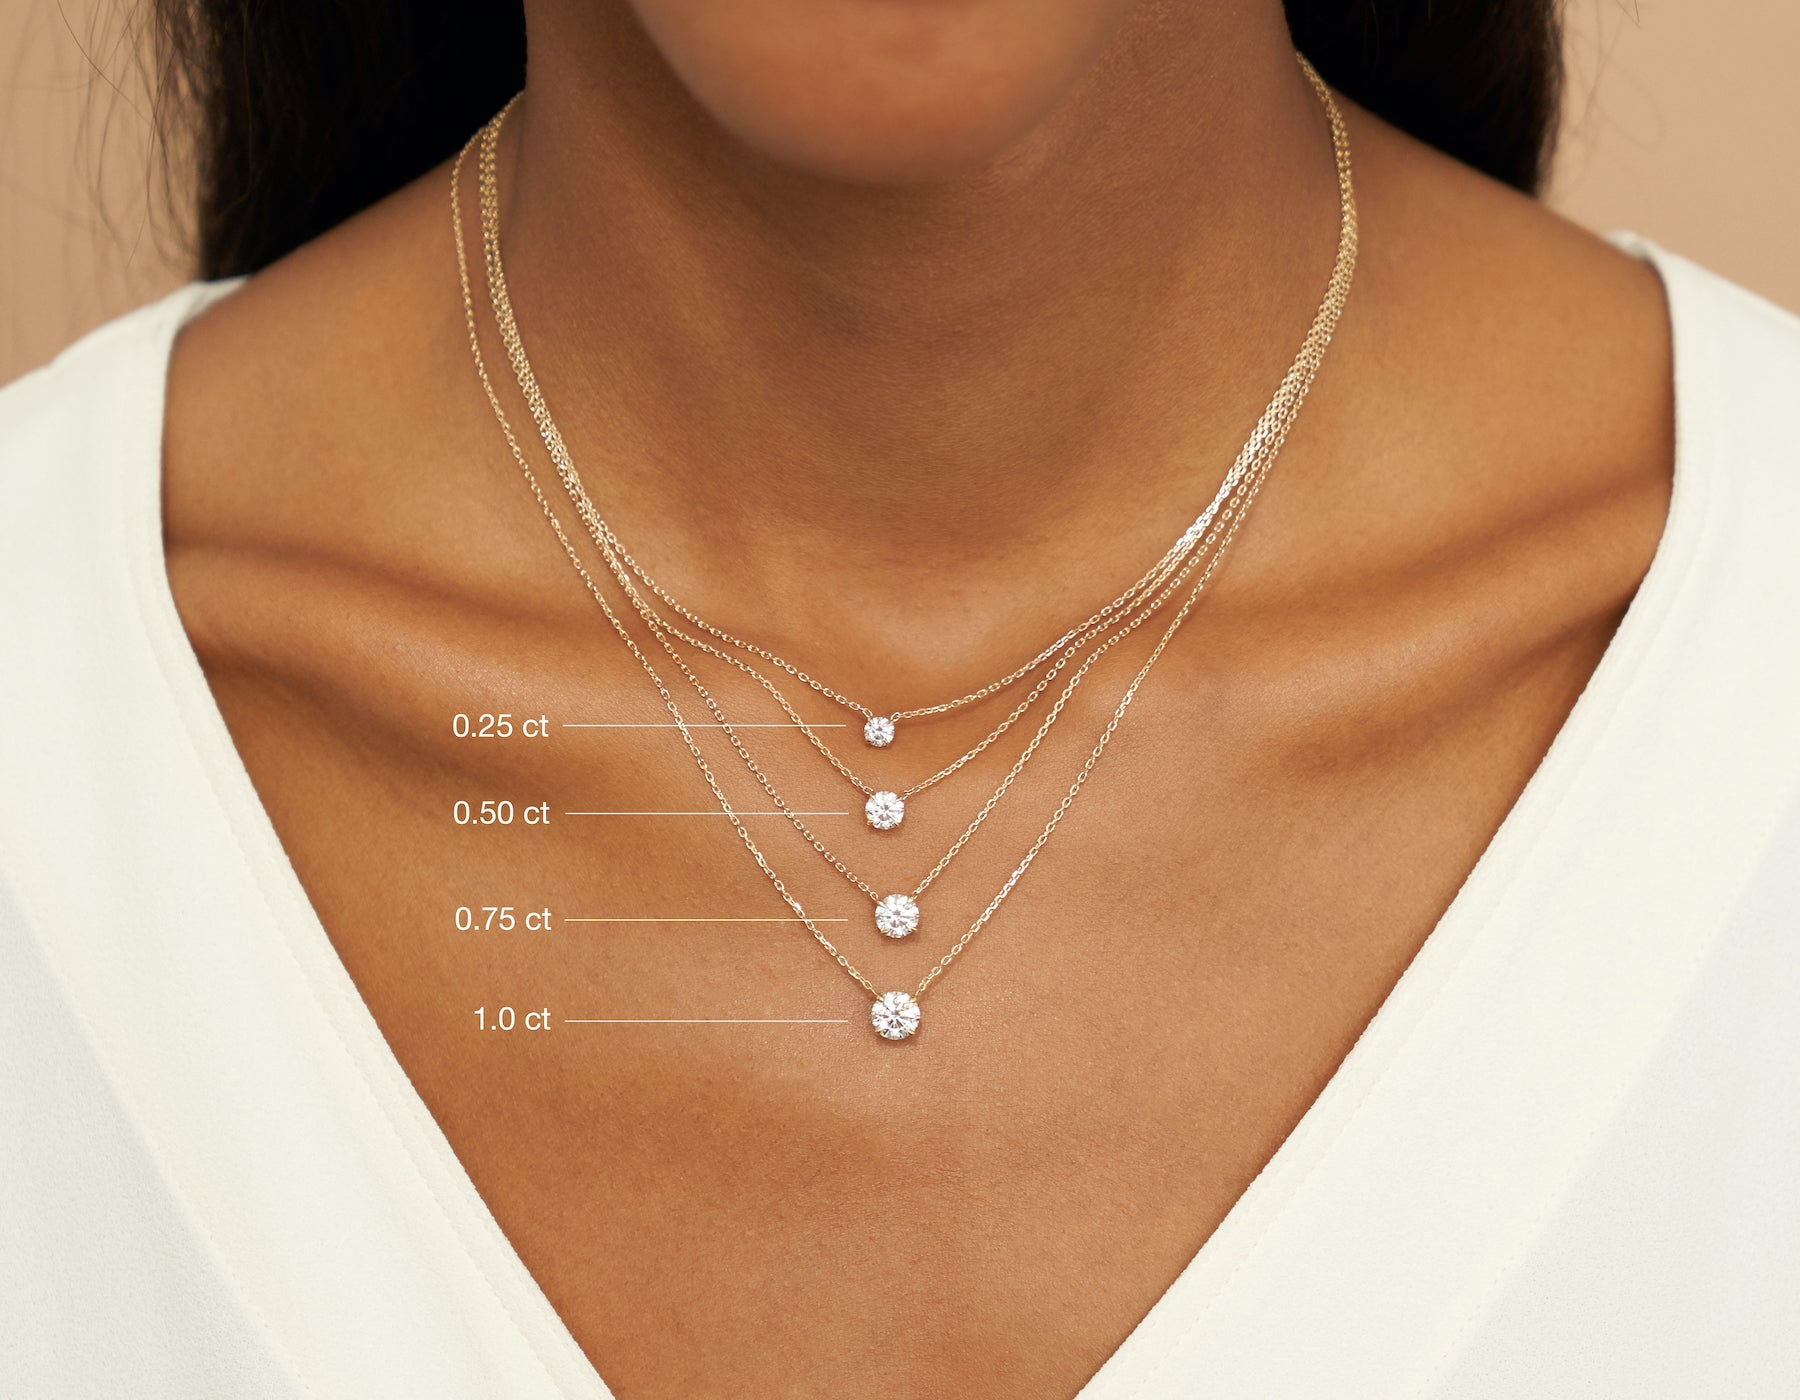 Model wearing Vrai 14K solid gold solitaire round brilliant diamond necklace 1ct .75ct .50 carat .25 carat minimalist simple jewelry